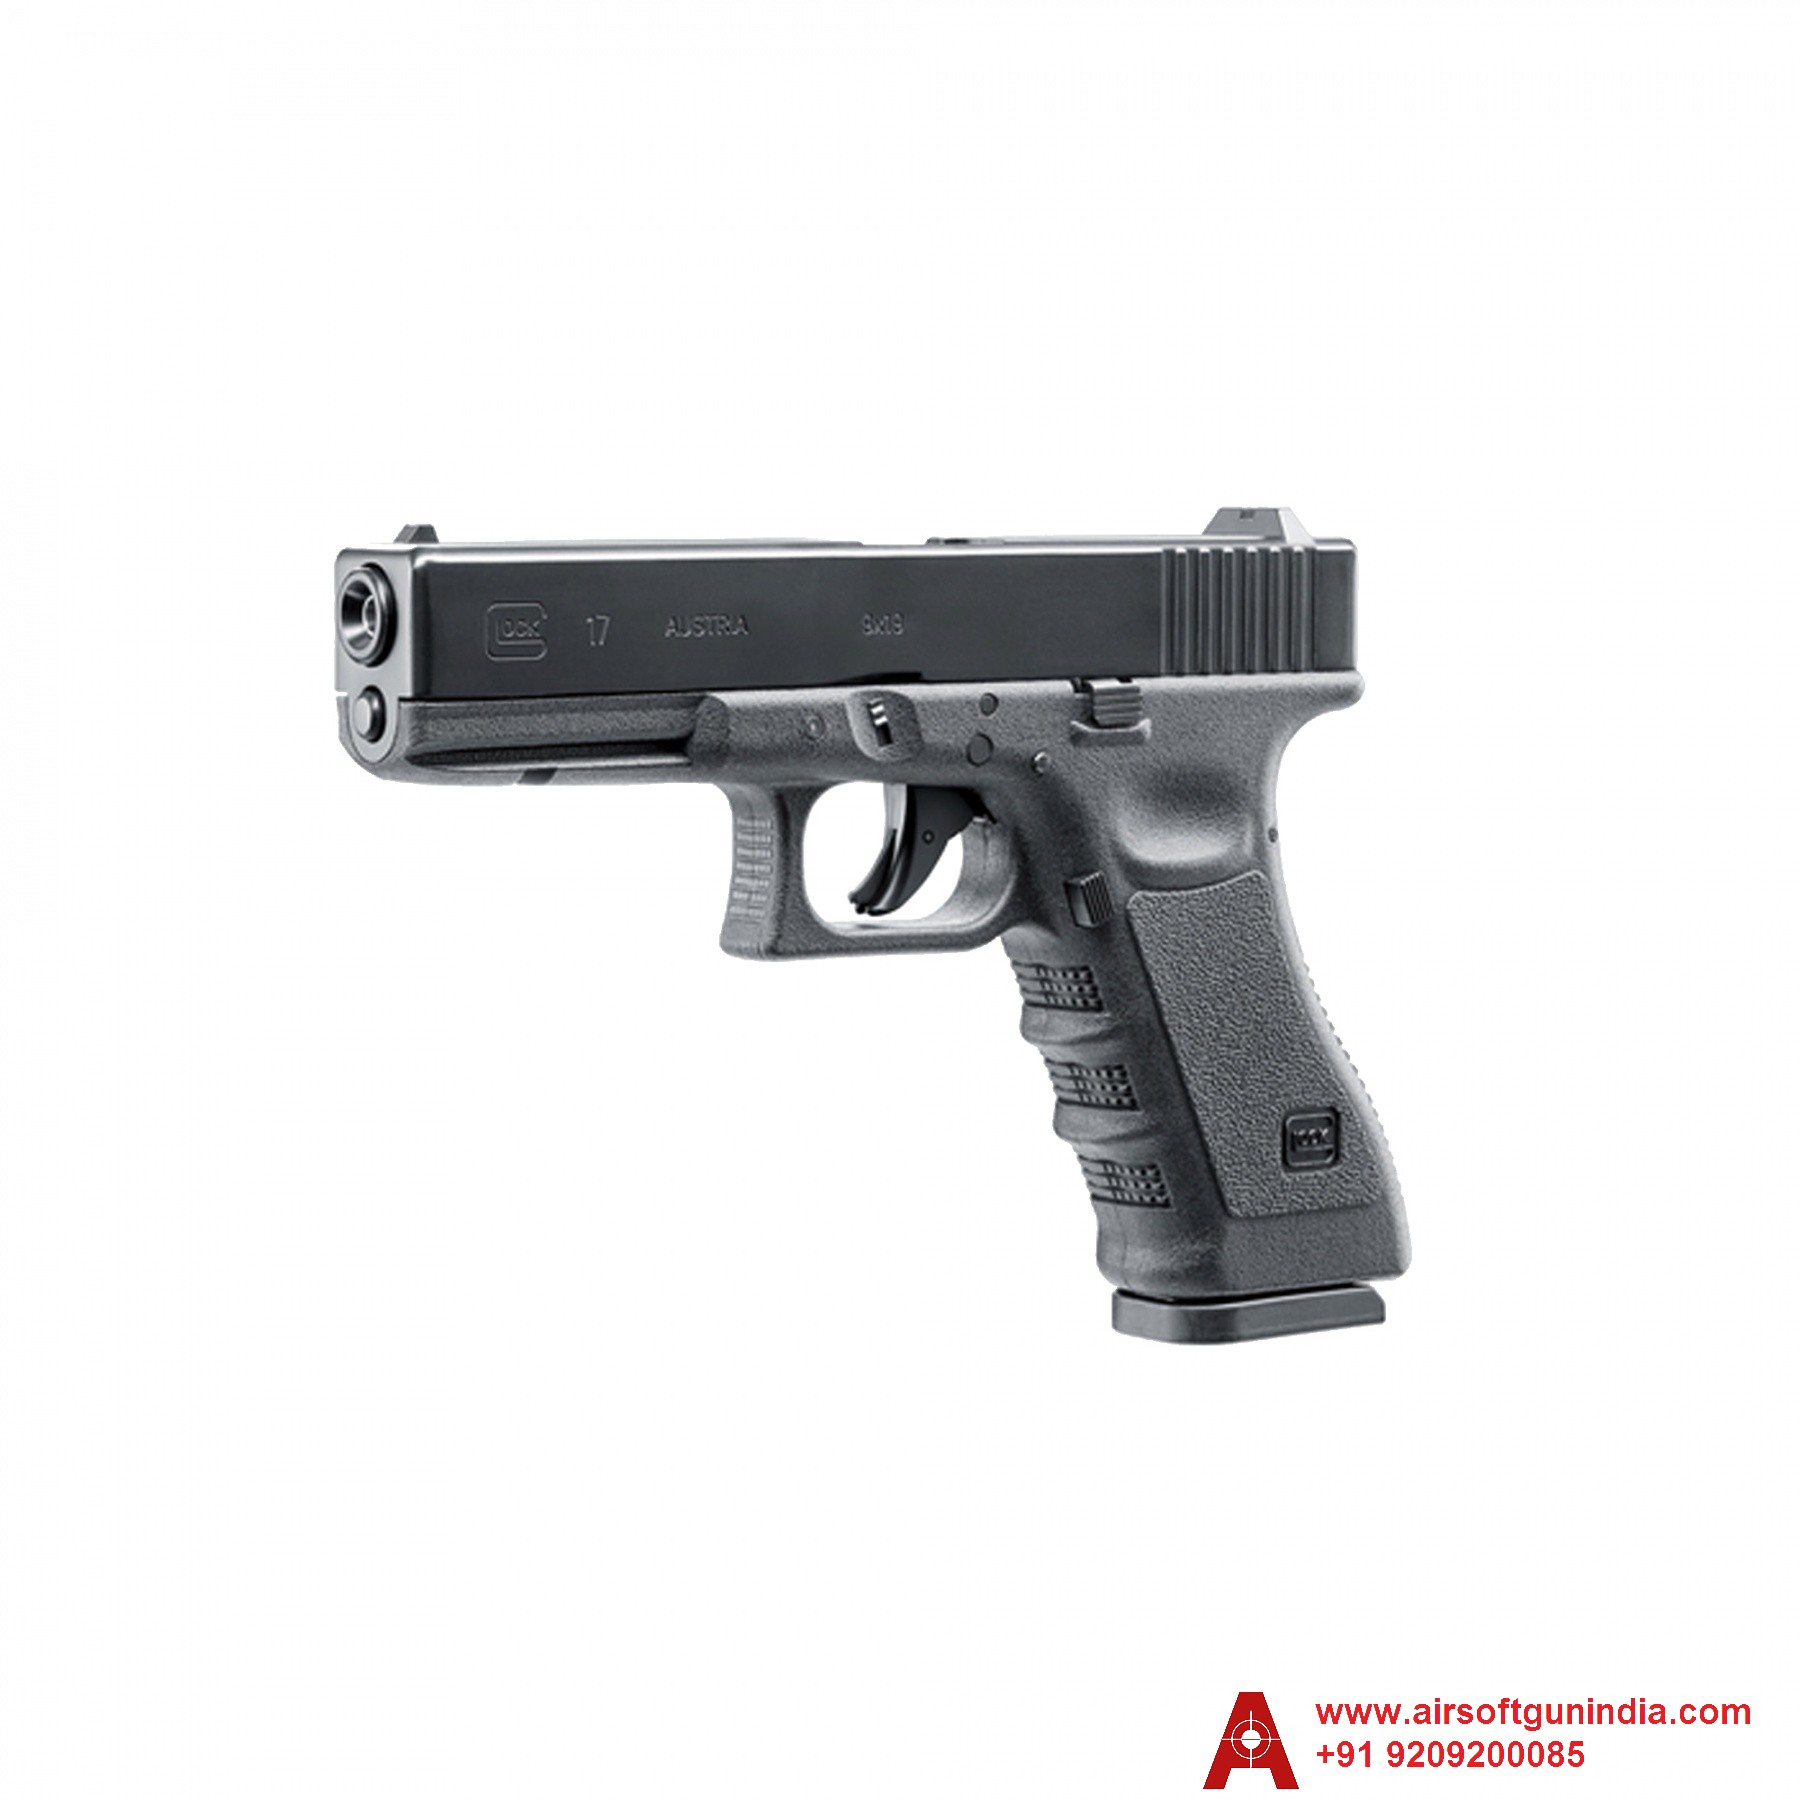 Glock 17 Gen3 Cal .177 CO2 Bb And Pellet Pistol By Airsoft Gun India